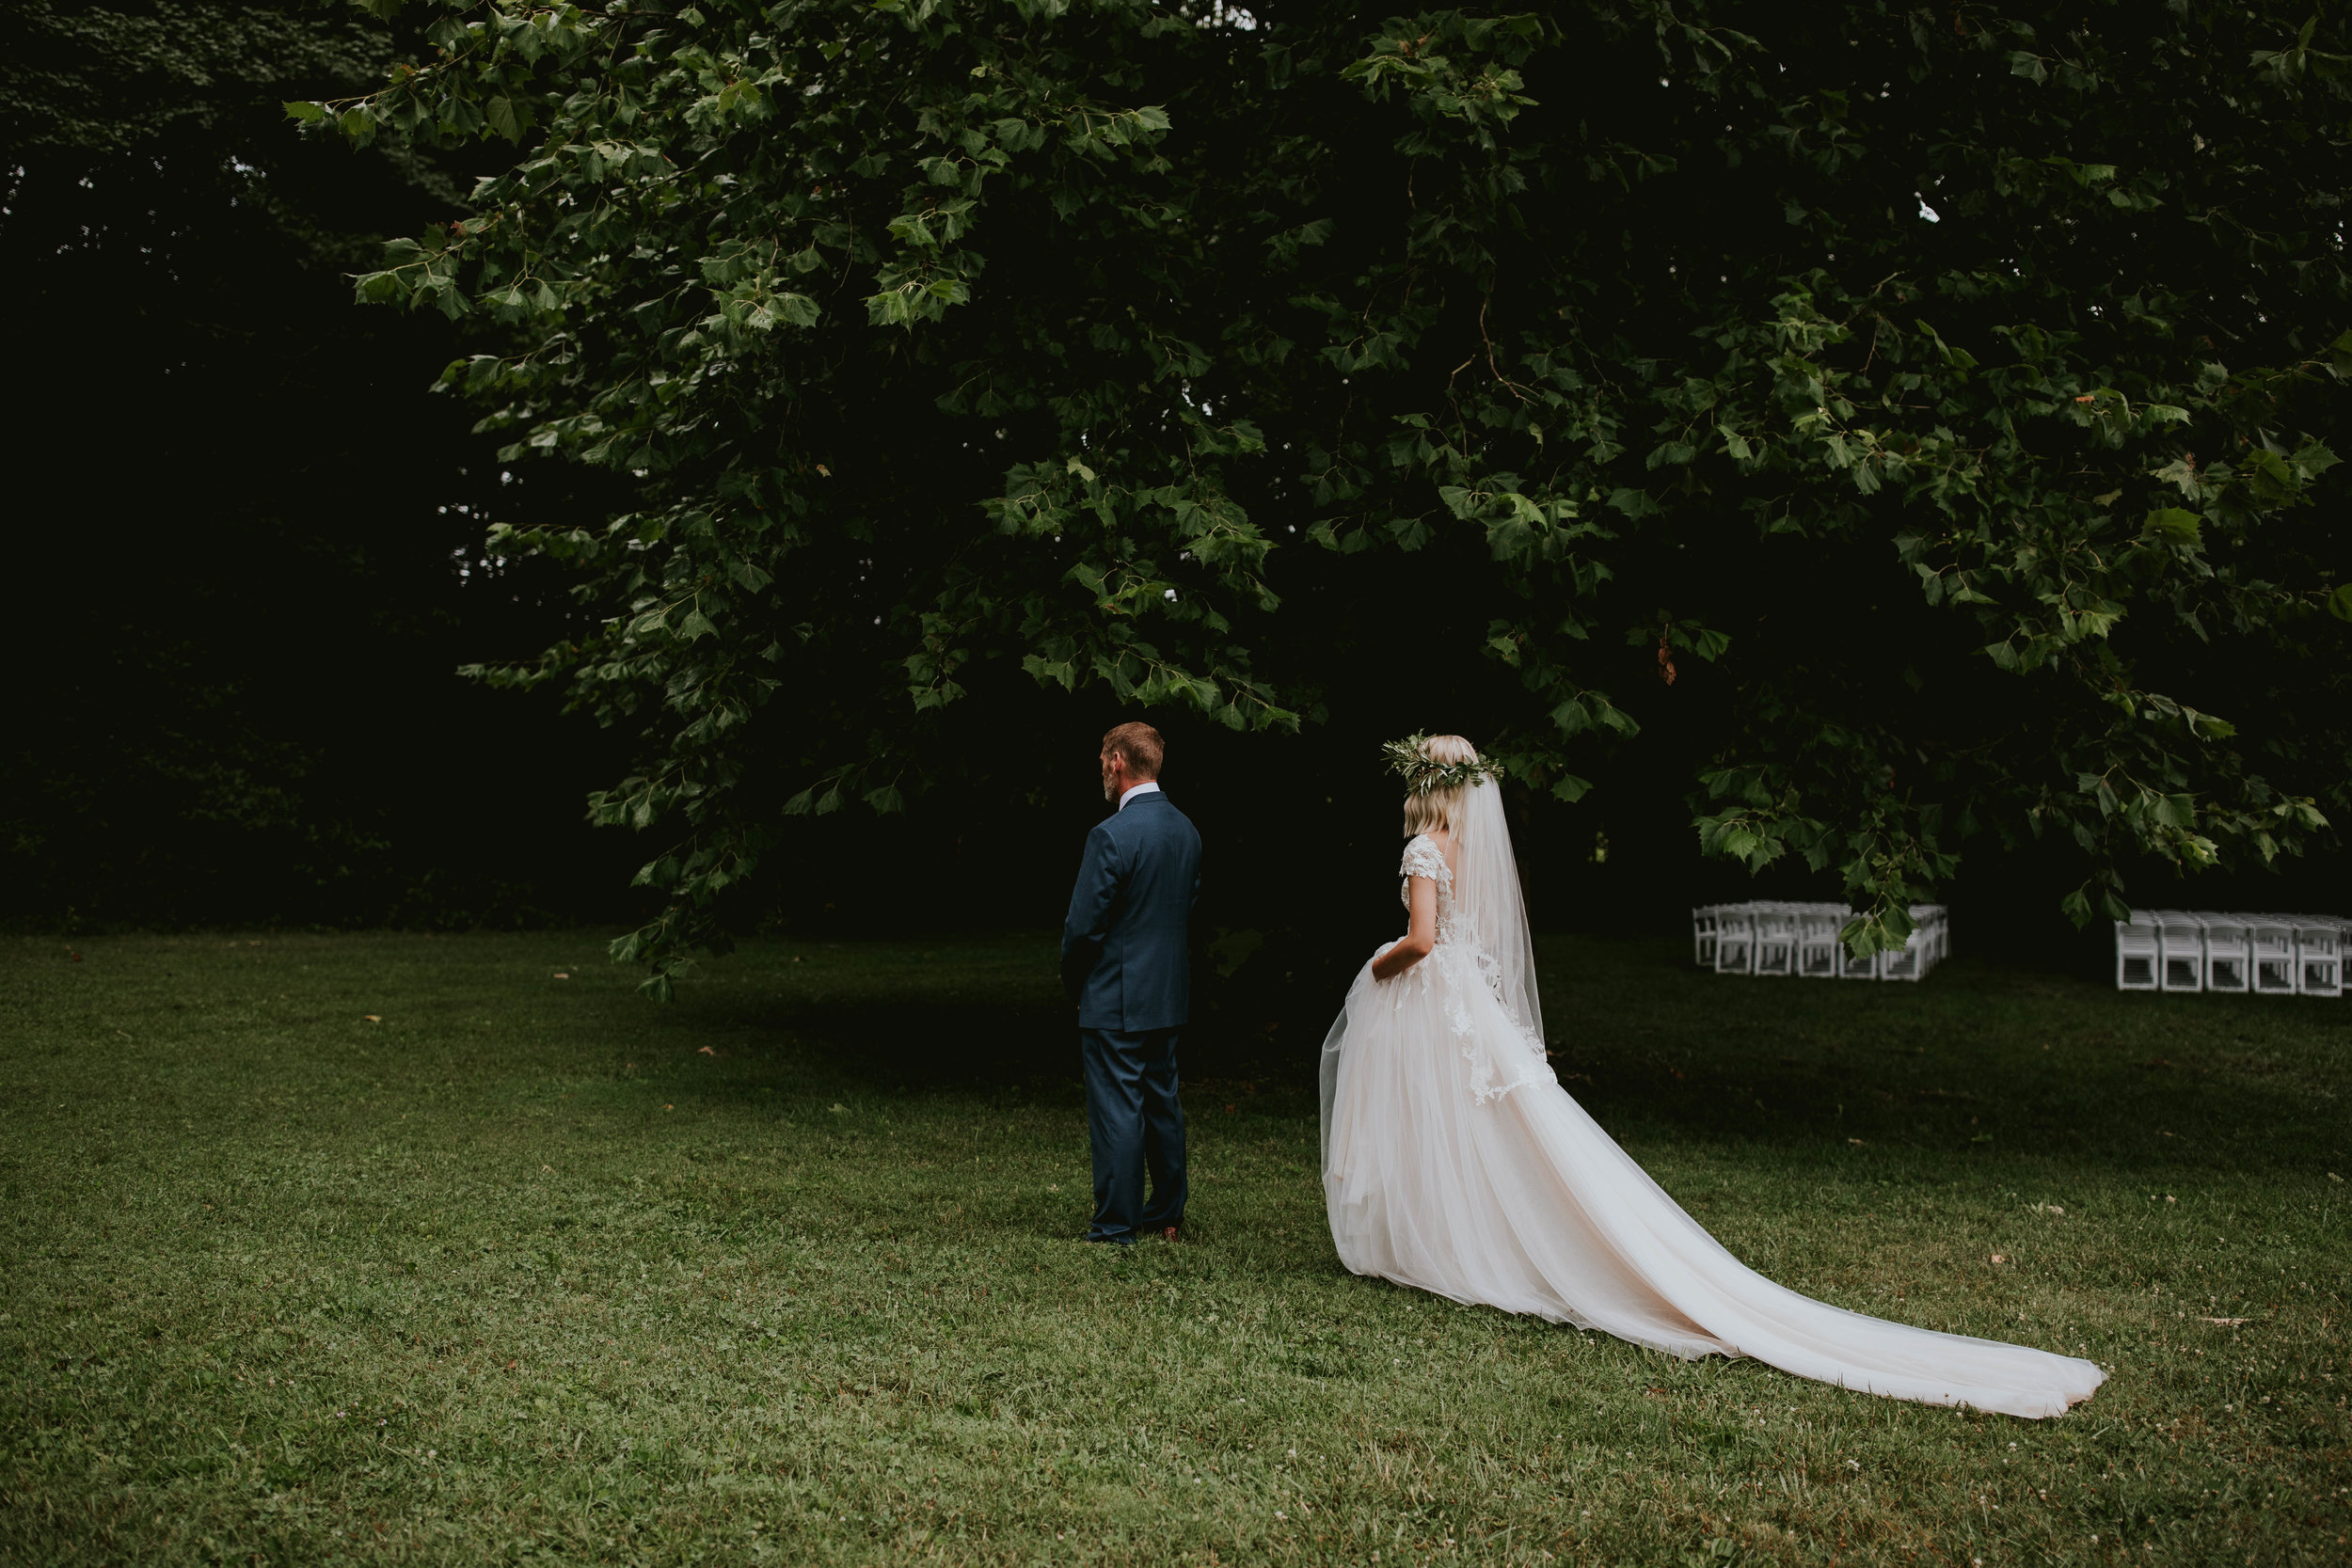 LaurenLandon-Wedding-2018-22665.jpg